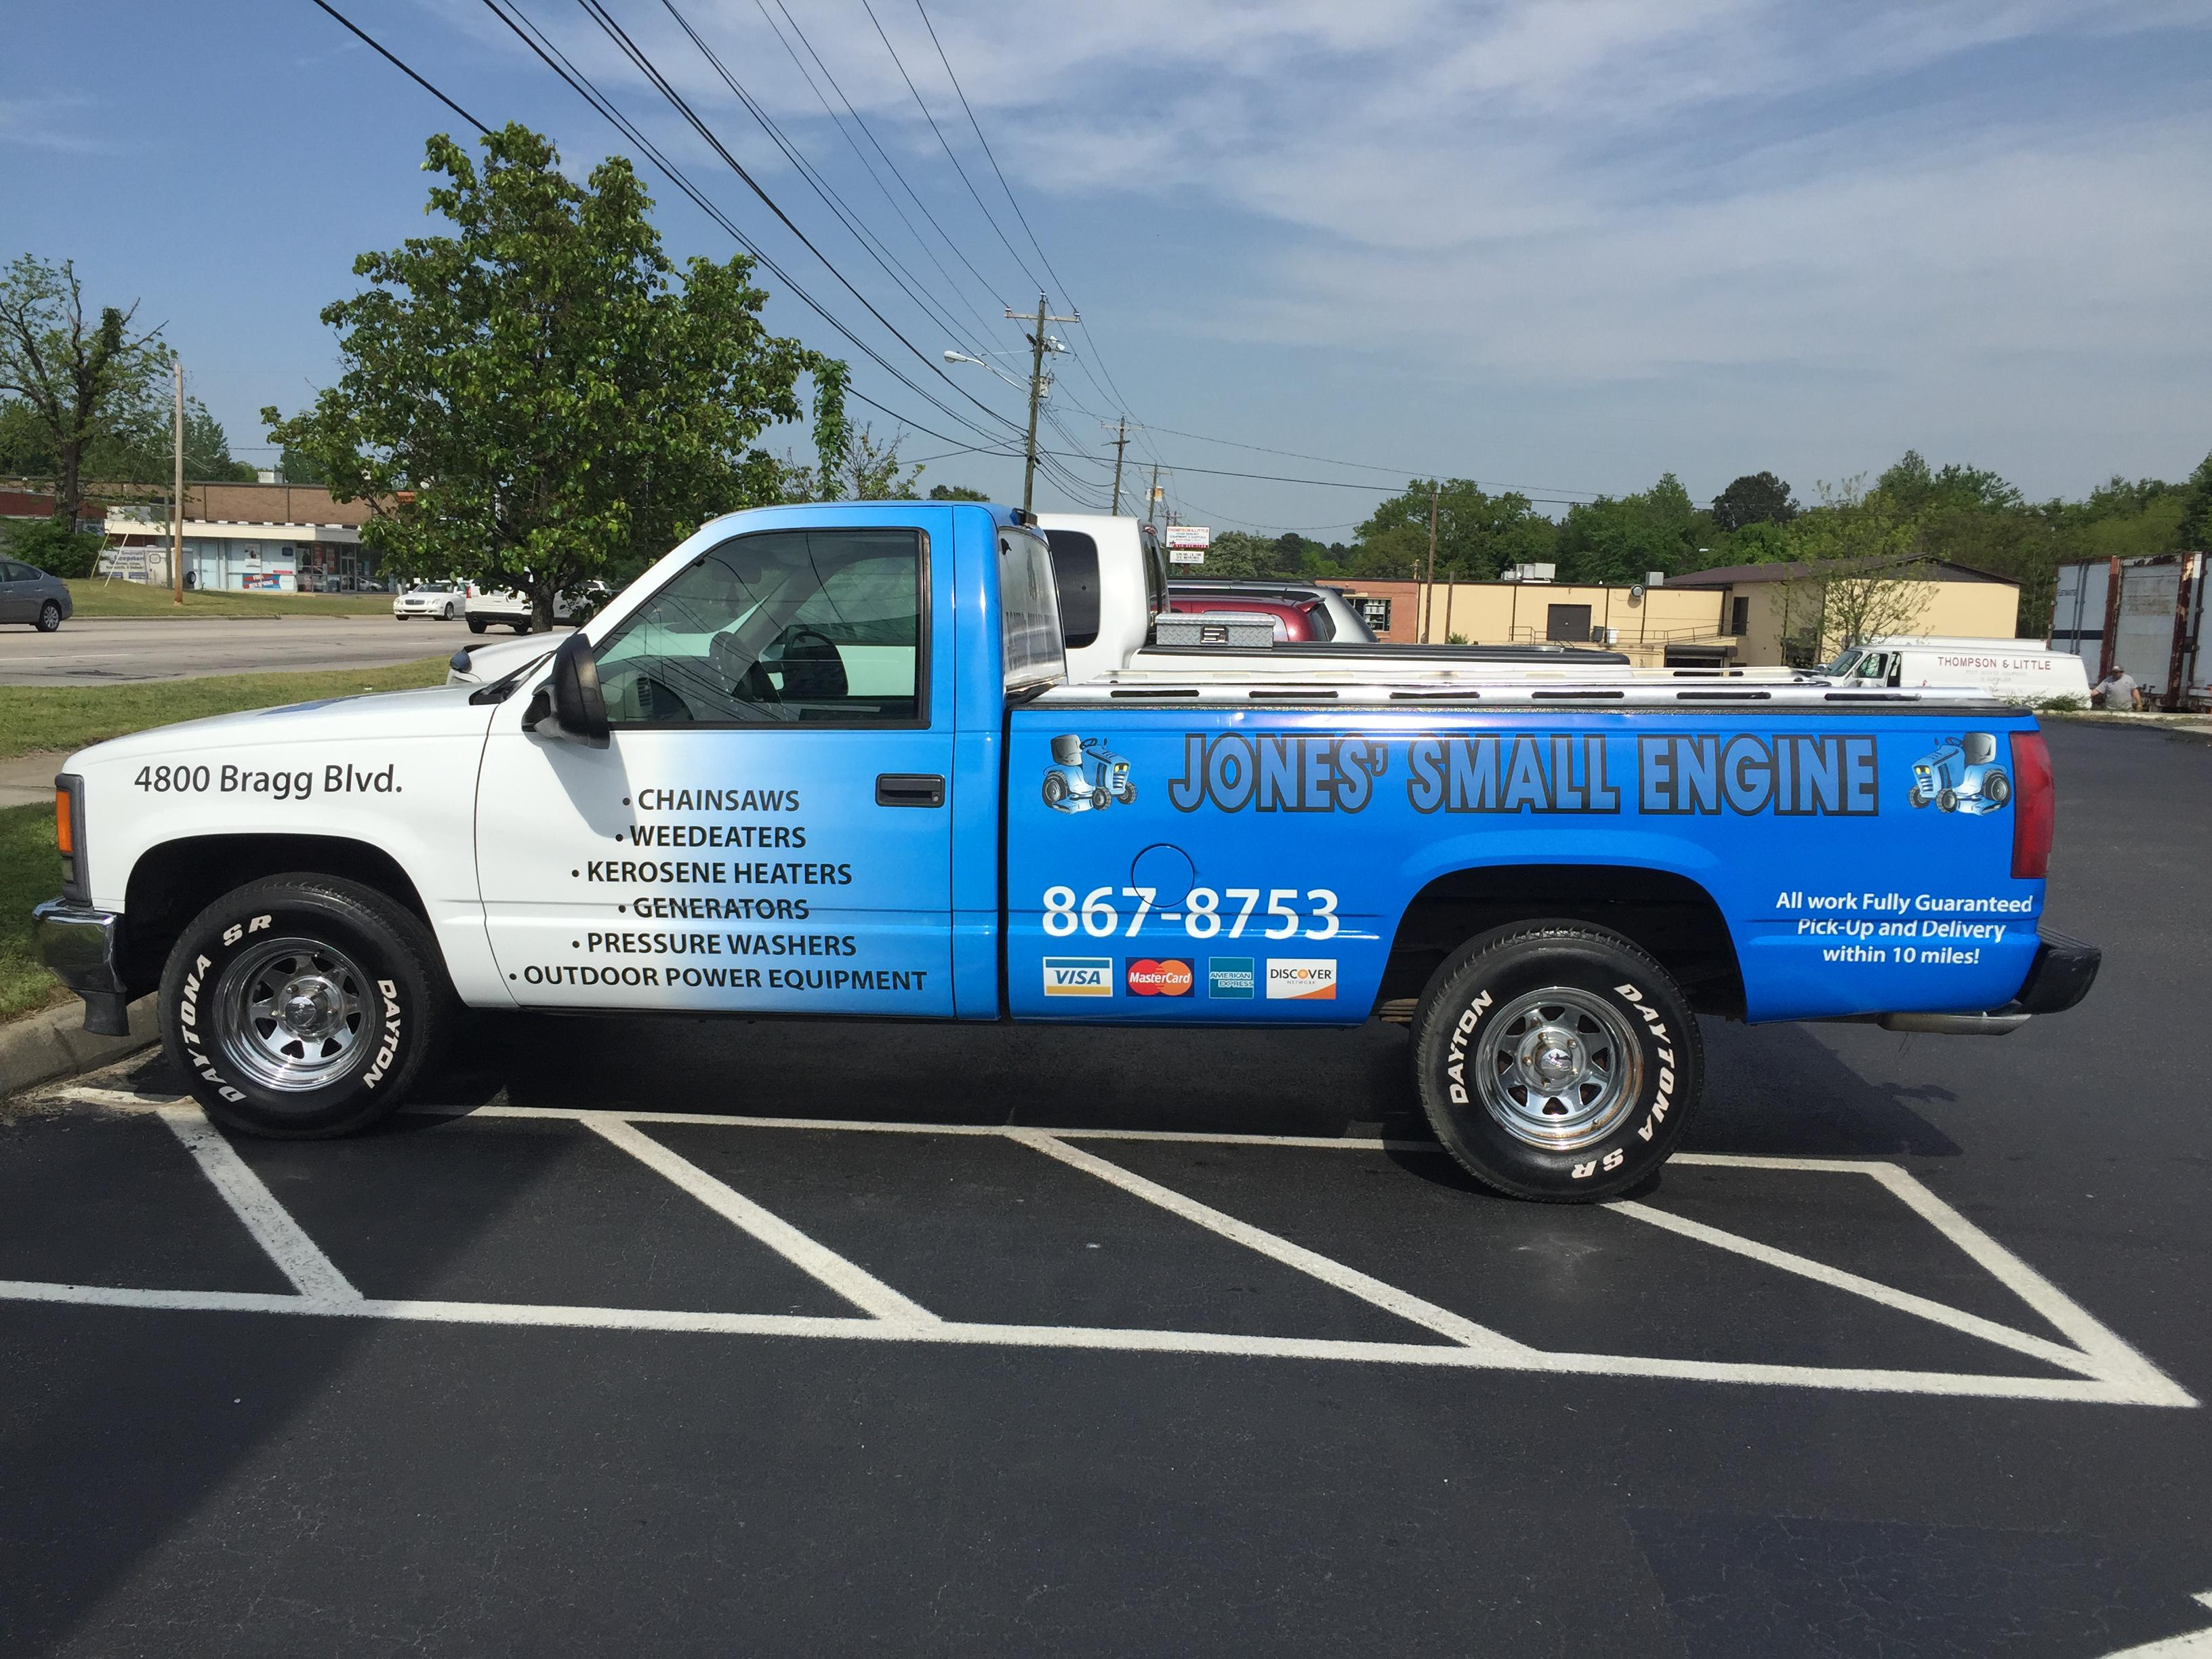 Jones Small Engine Truck Wrap